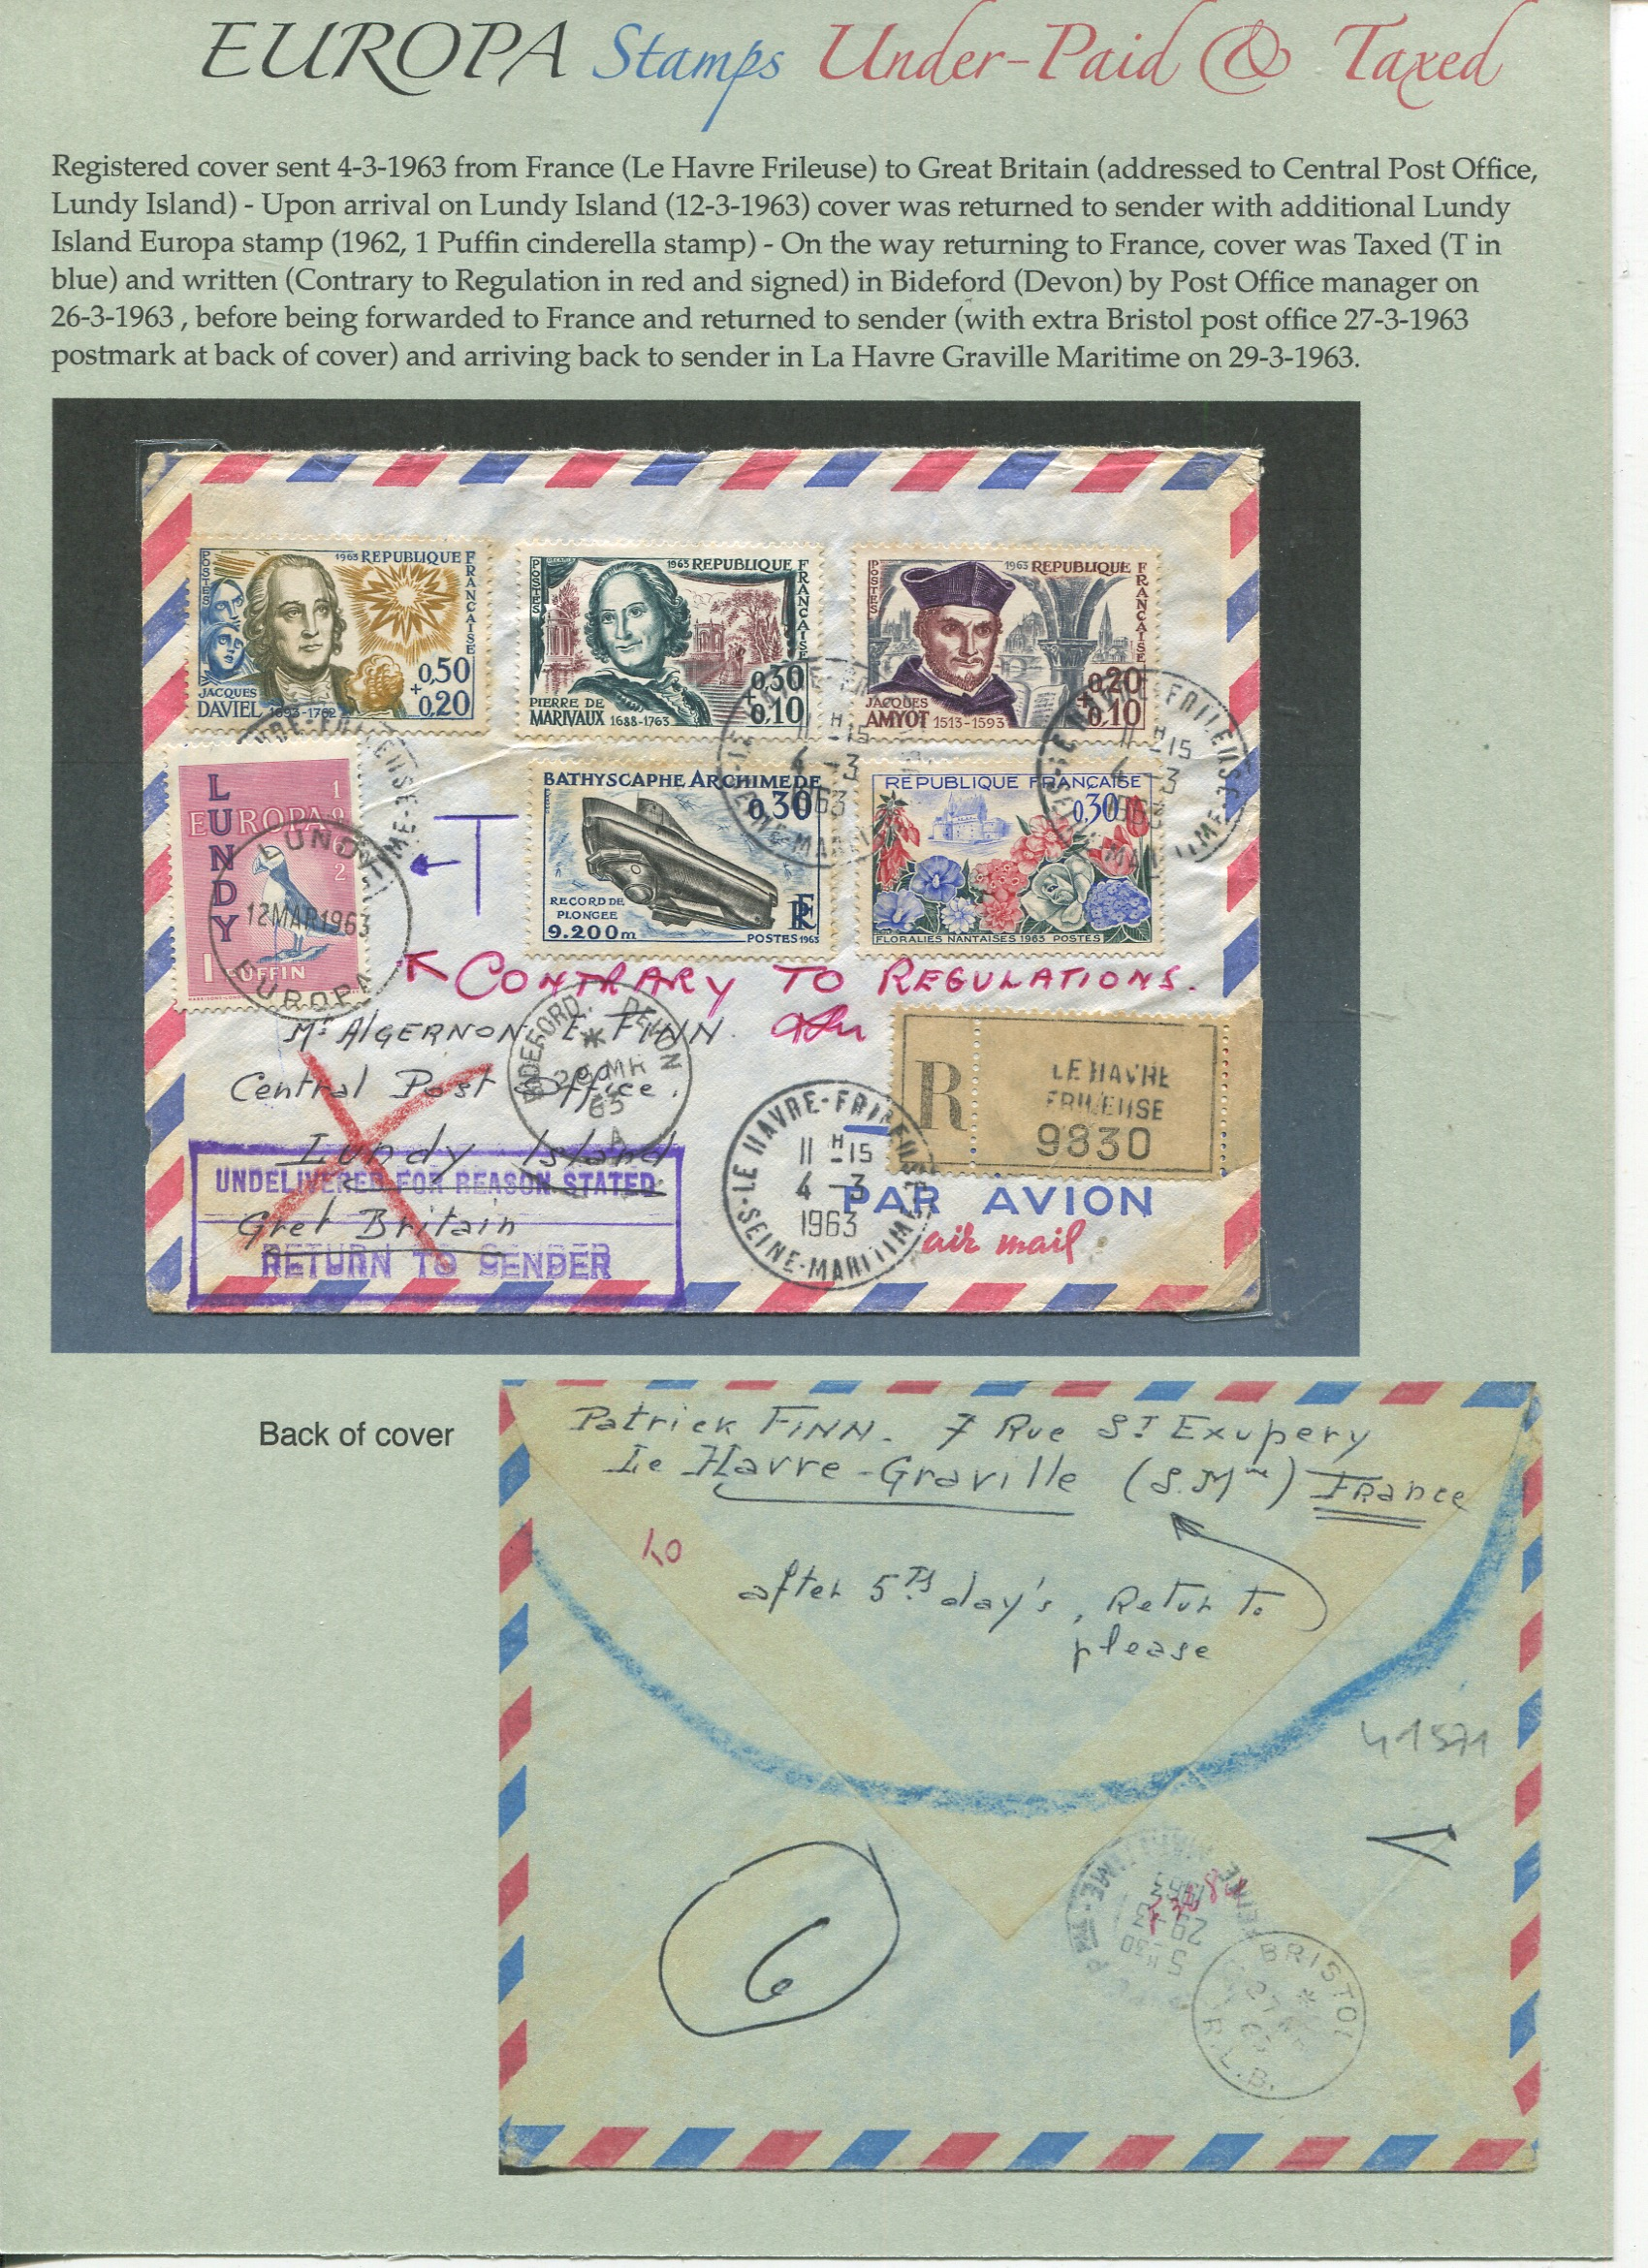 Letter from France to UK (Lundy Island), Return to Sender and Taxed by UK Post Office